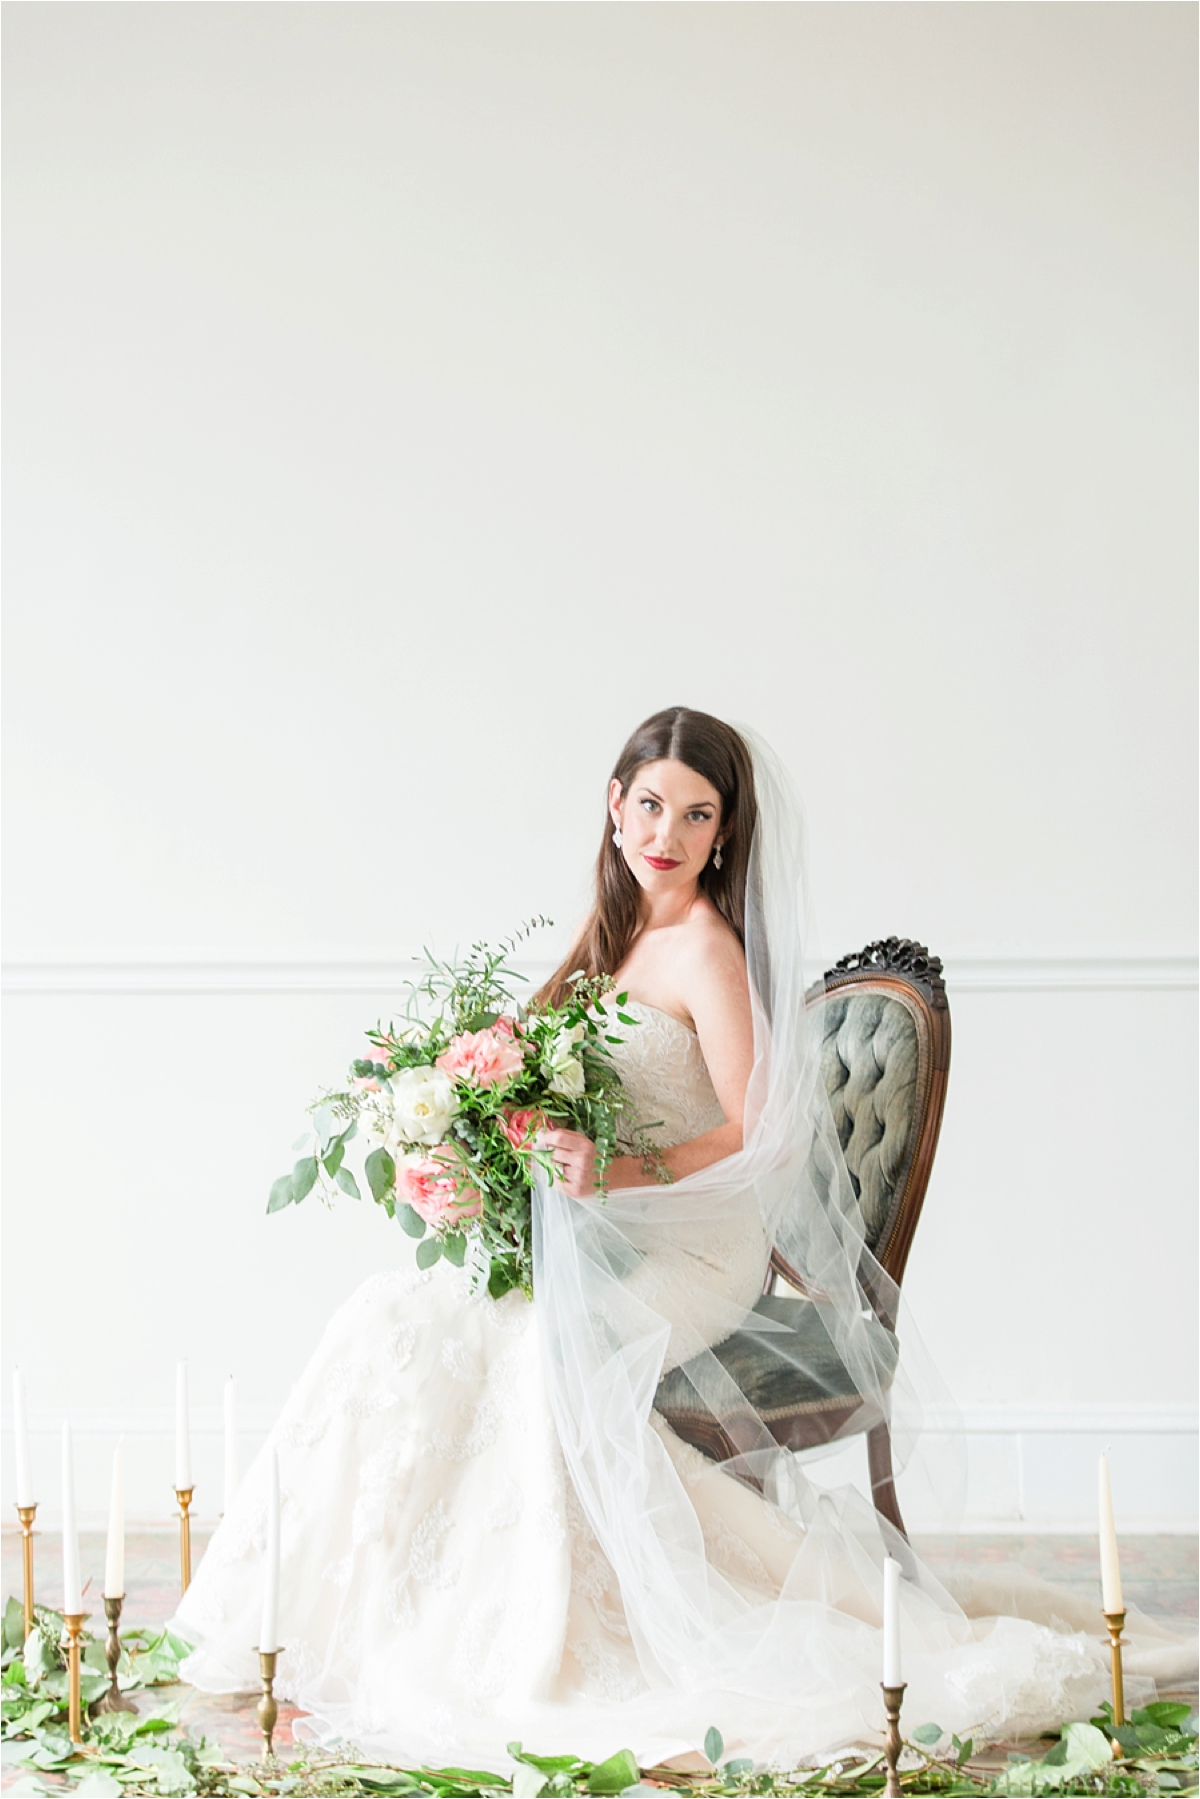 Bridal-Portraits-the Pillars-Mobile, Alabama-Dragonfly-Photography-vintage-antique-chair